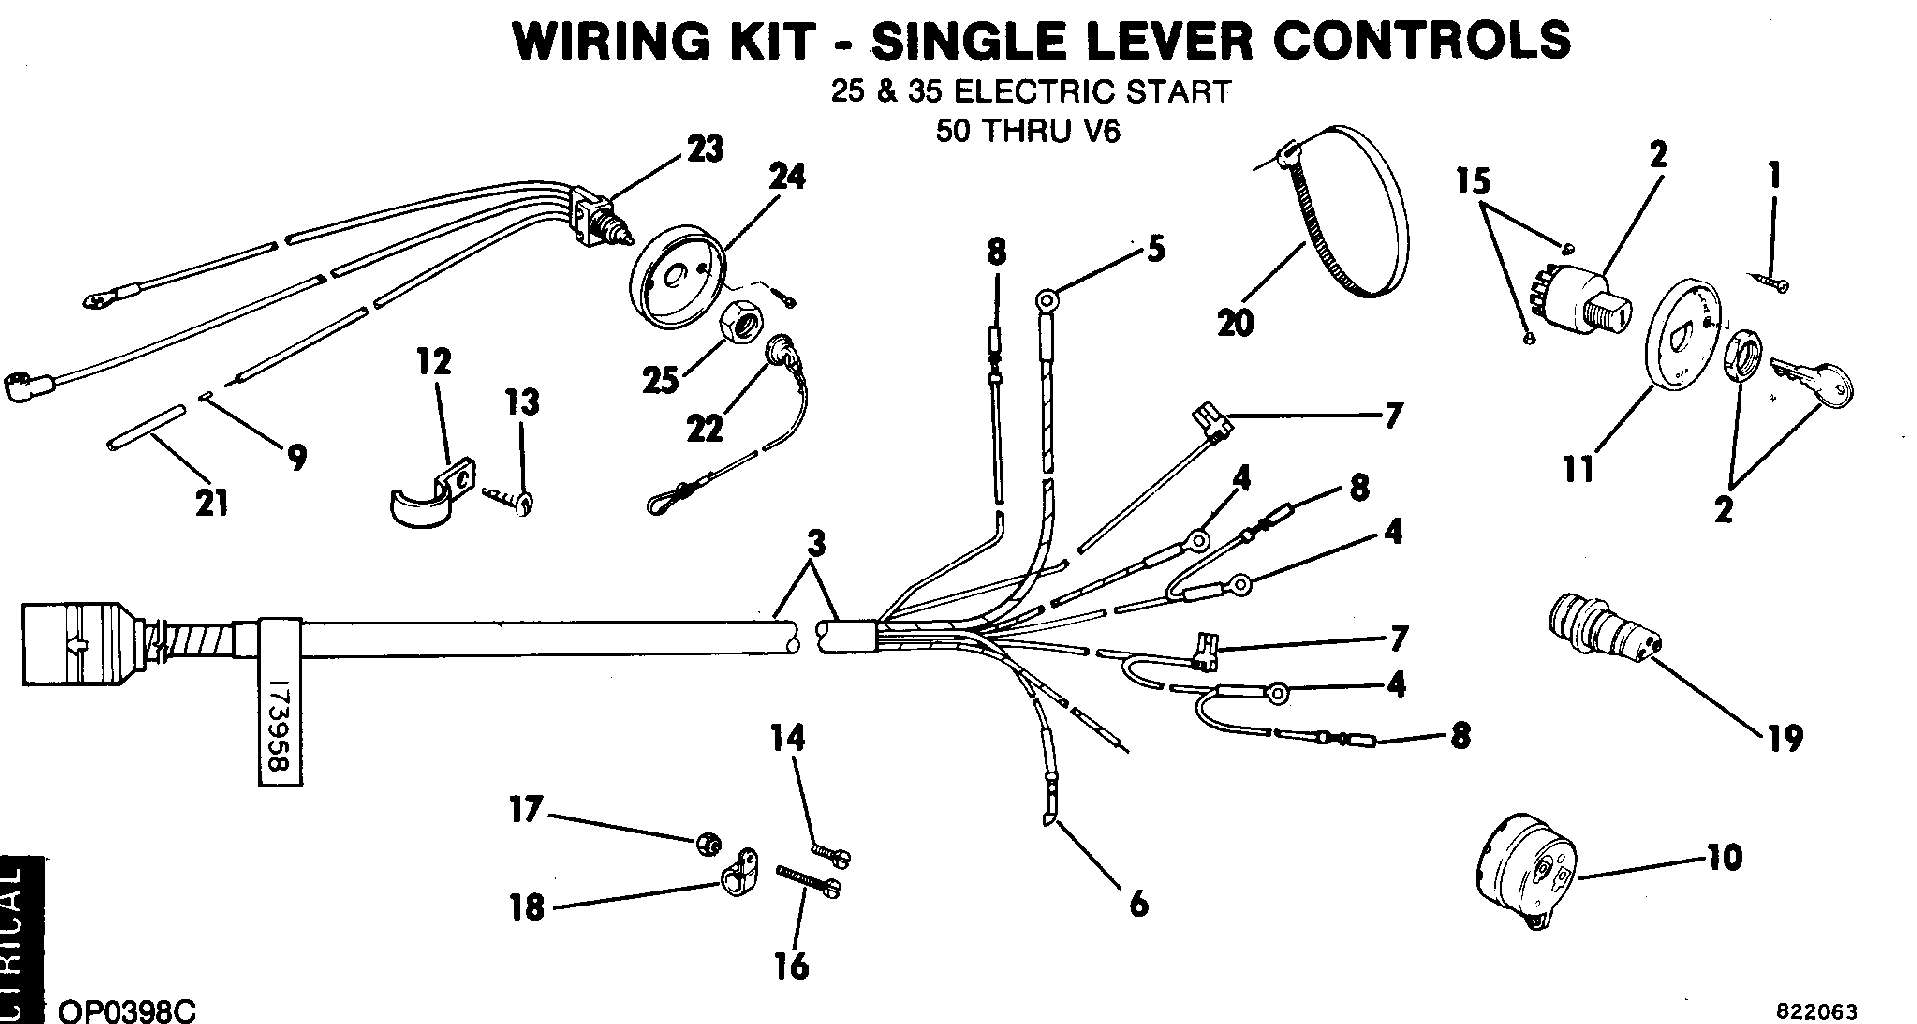 Wiring Kit Single Lever Controls 25 Amp 35 Ele